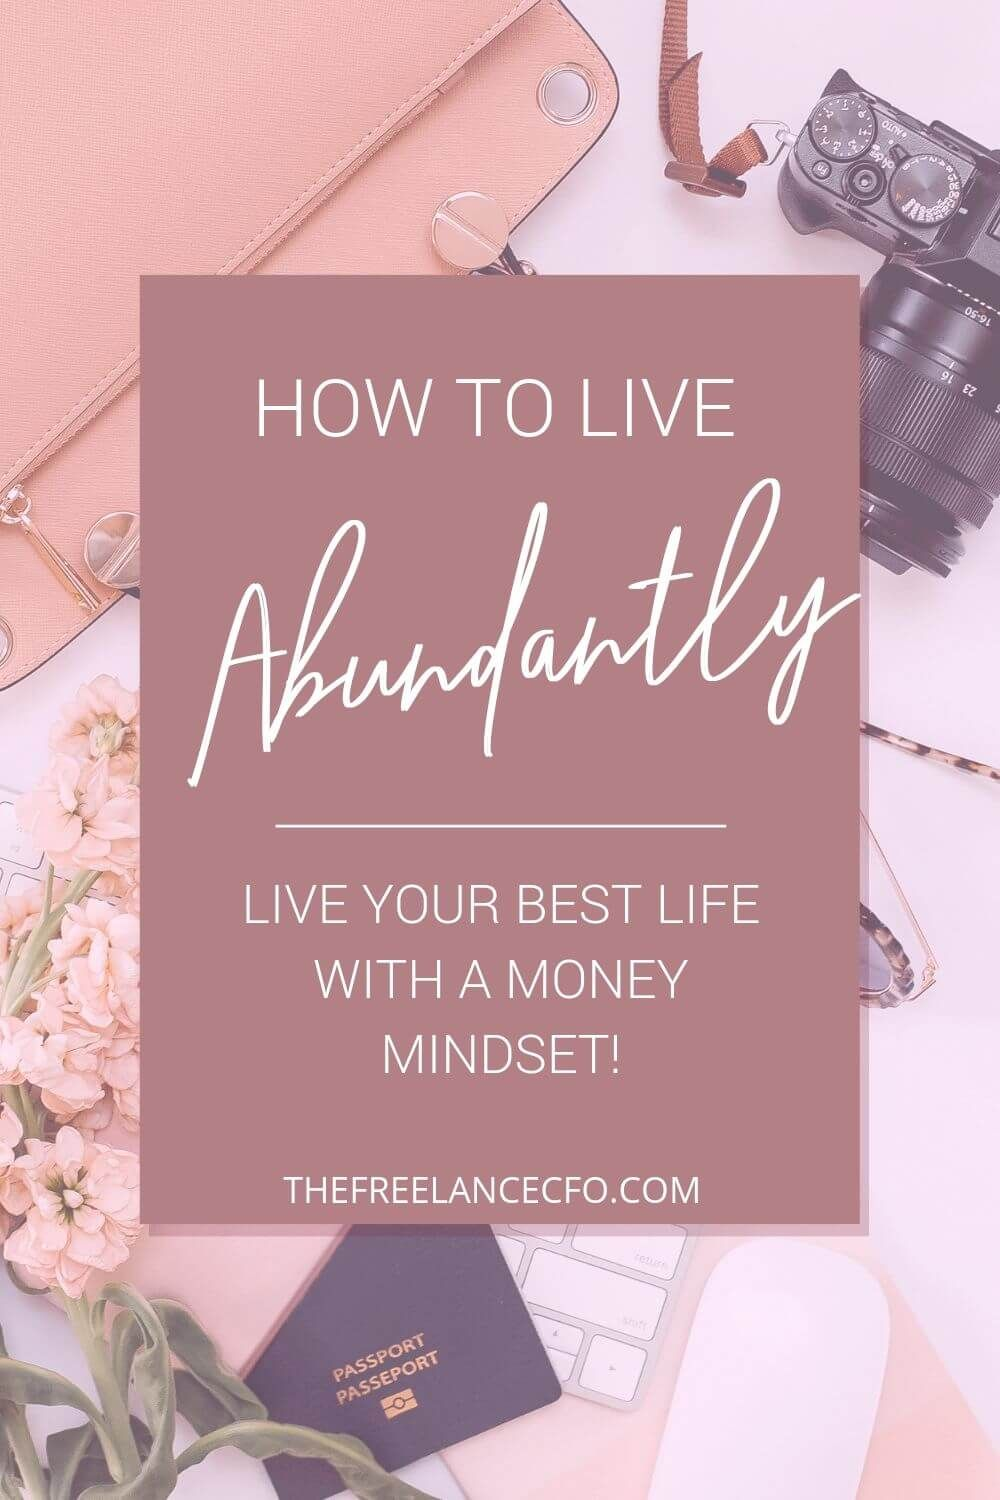 Live your best life by shifting your mindset about money and success. Here is how an abundant mindset changed my life! #abundantliving #bestlife #mindset